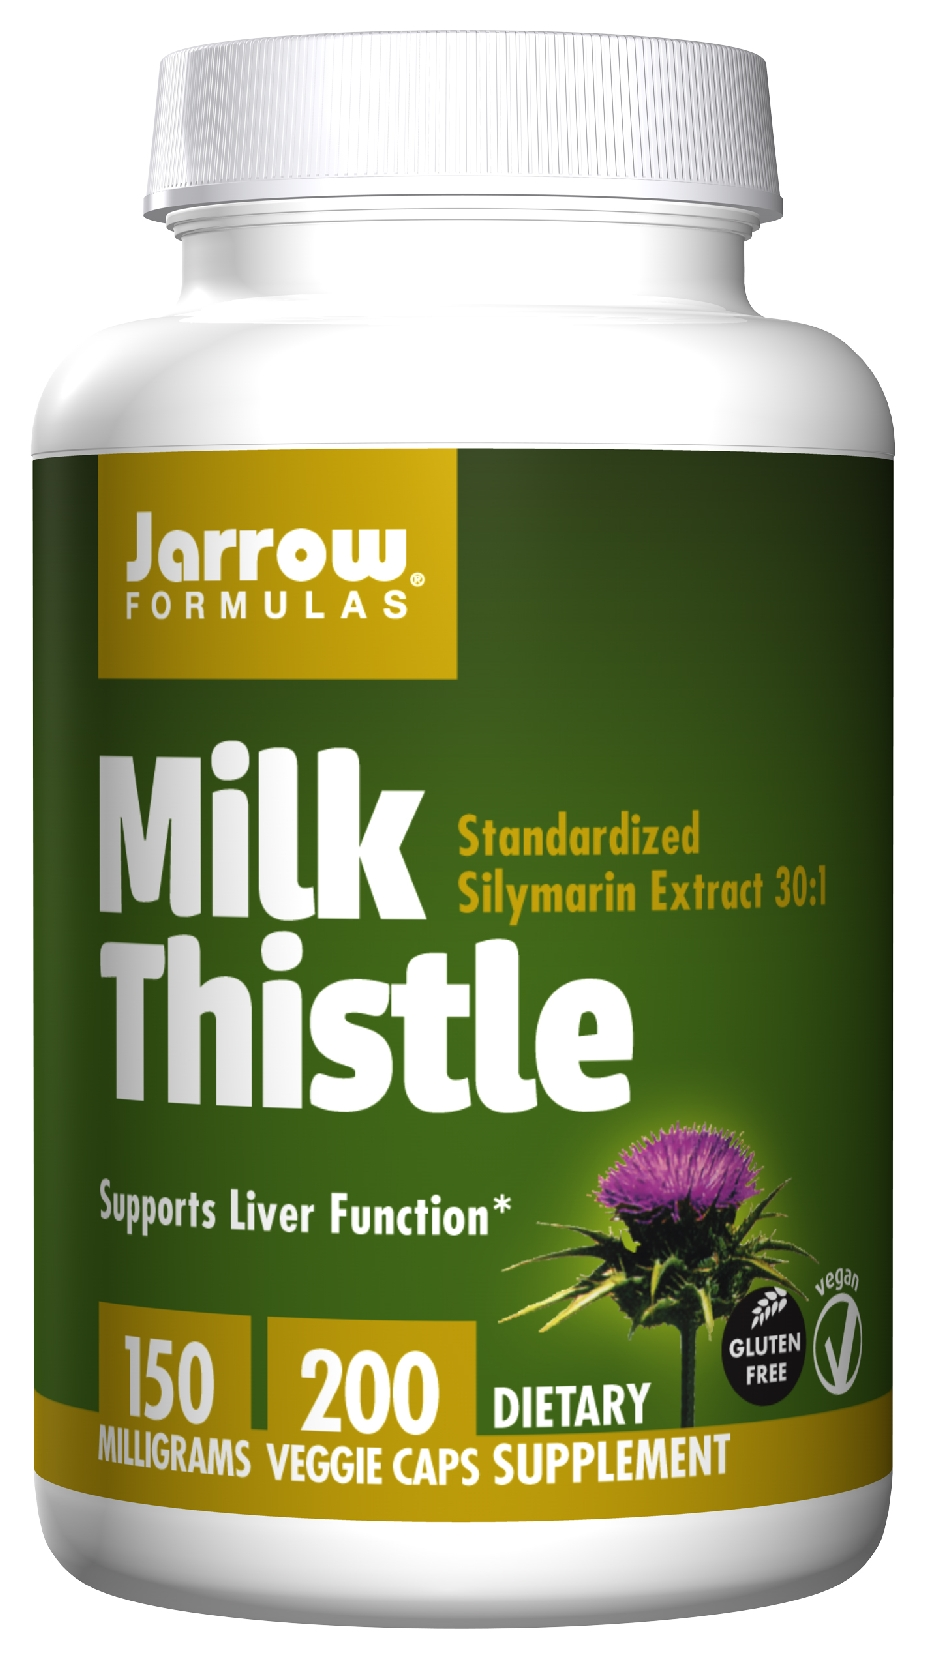 Milk Thistle 150 mg 200 caps by Jarrow Formulas